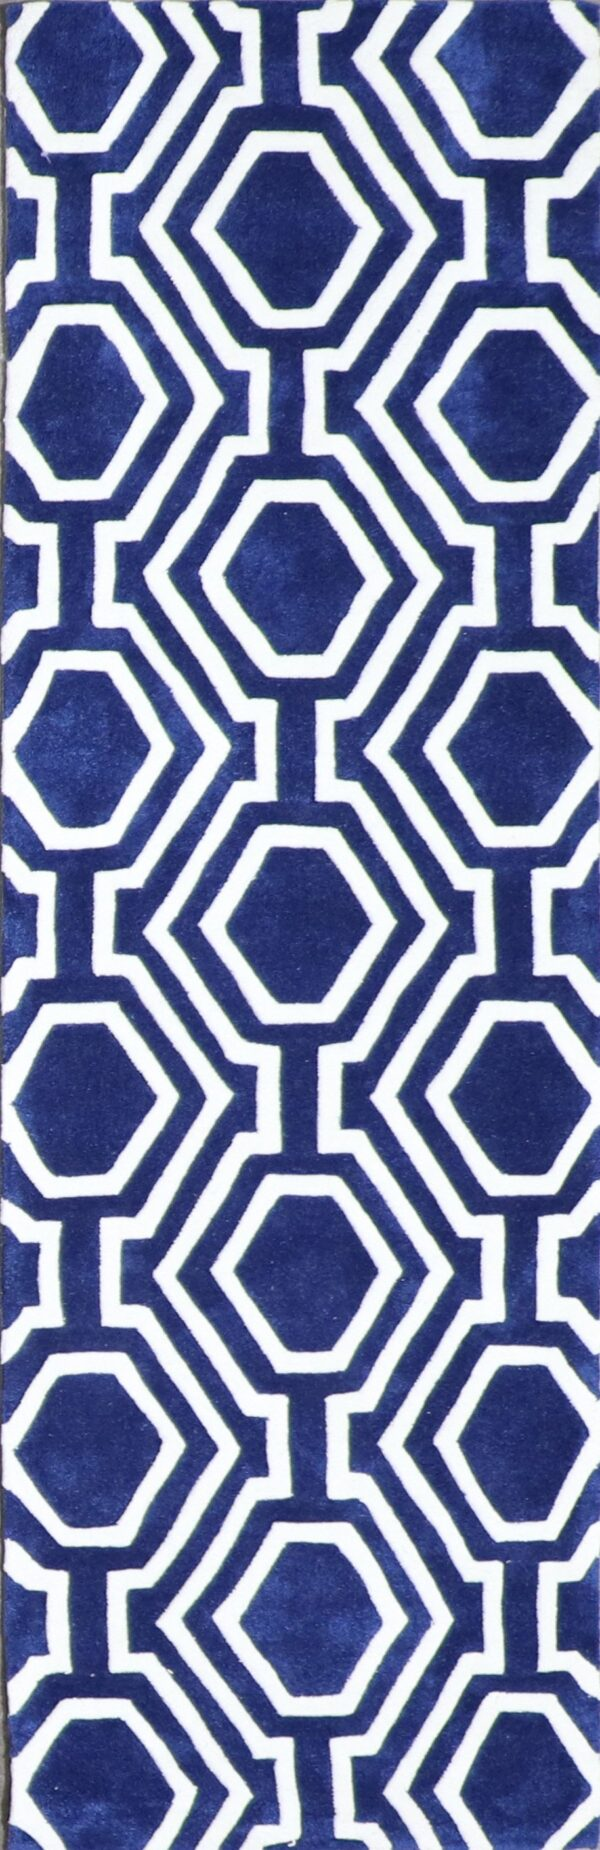 """2'3""""x7'5"""" Contemporary Wool Hand-Tufted Rug - Direct Rug Import 